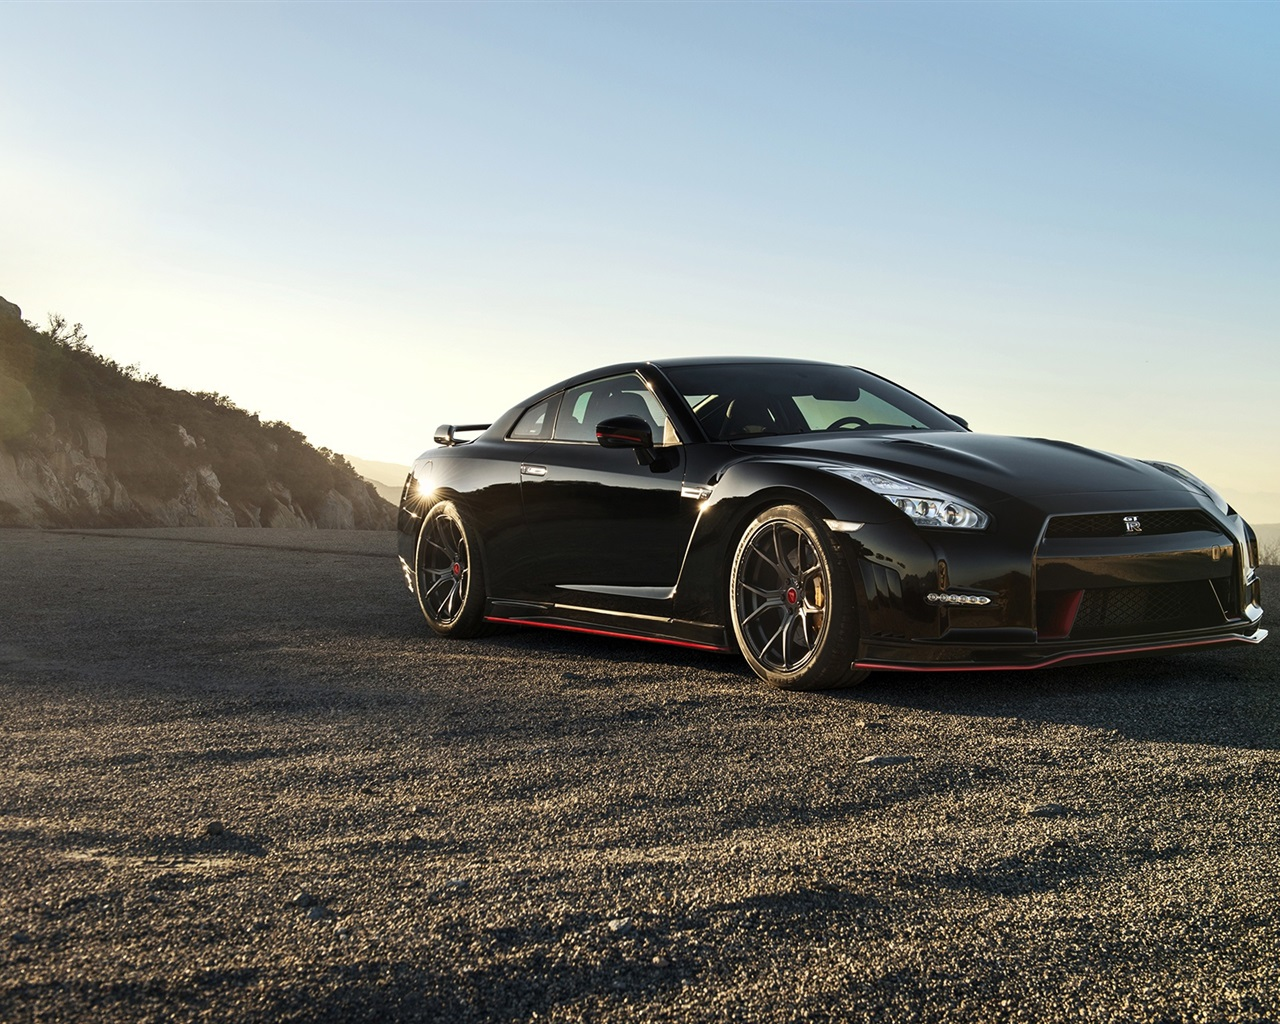 Nissan GT R black supercar Wallpaper 1280x1024 resolution wallpaper 1280x1024